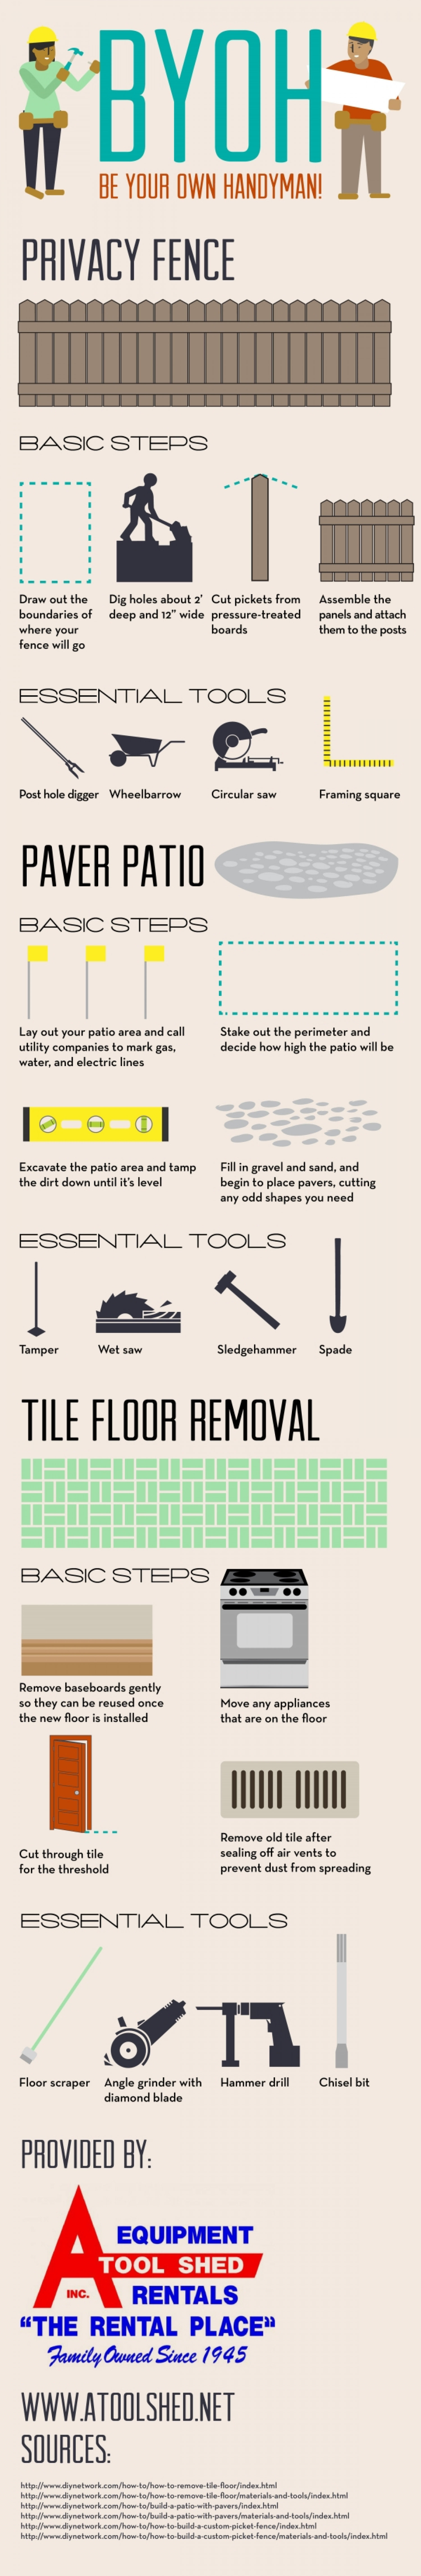 BYOH: Be Your Own Handyman! Infographic